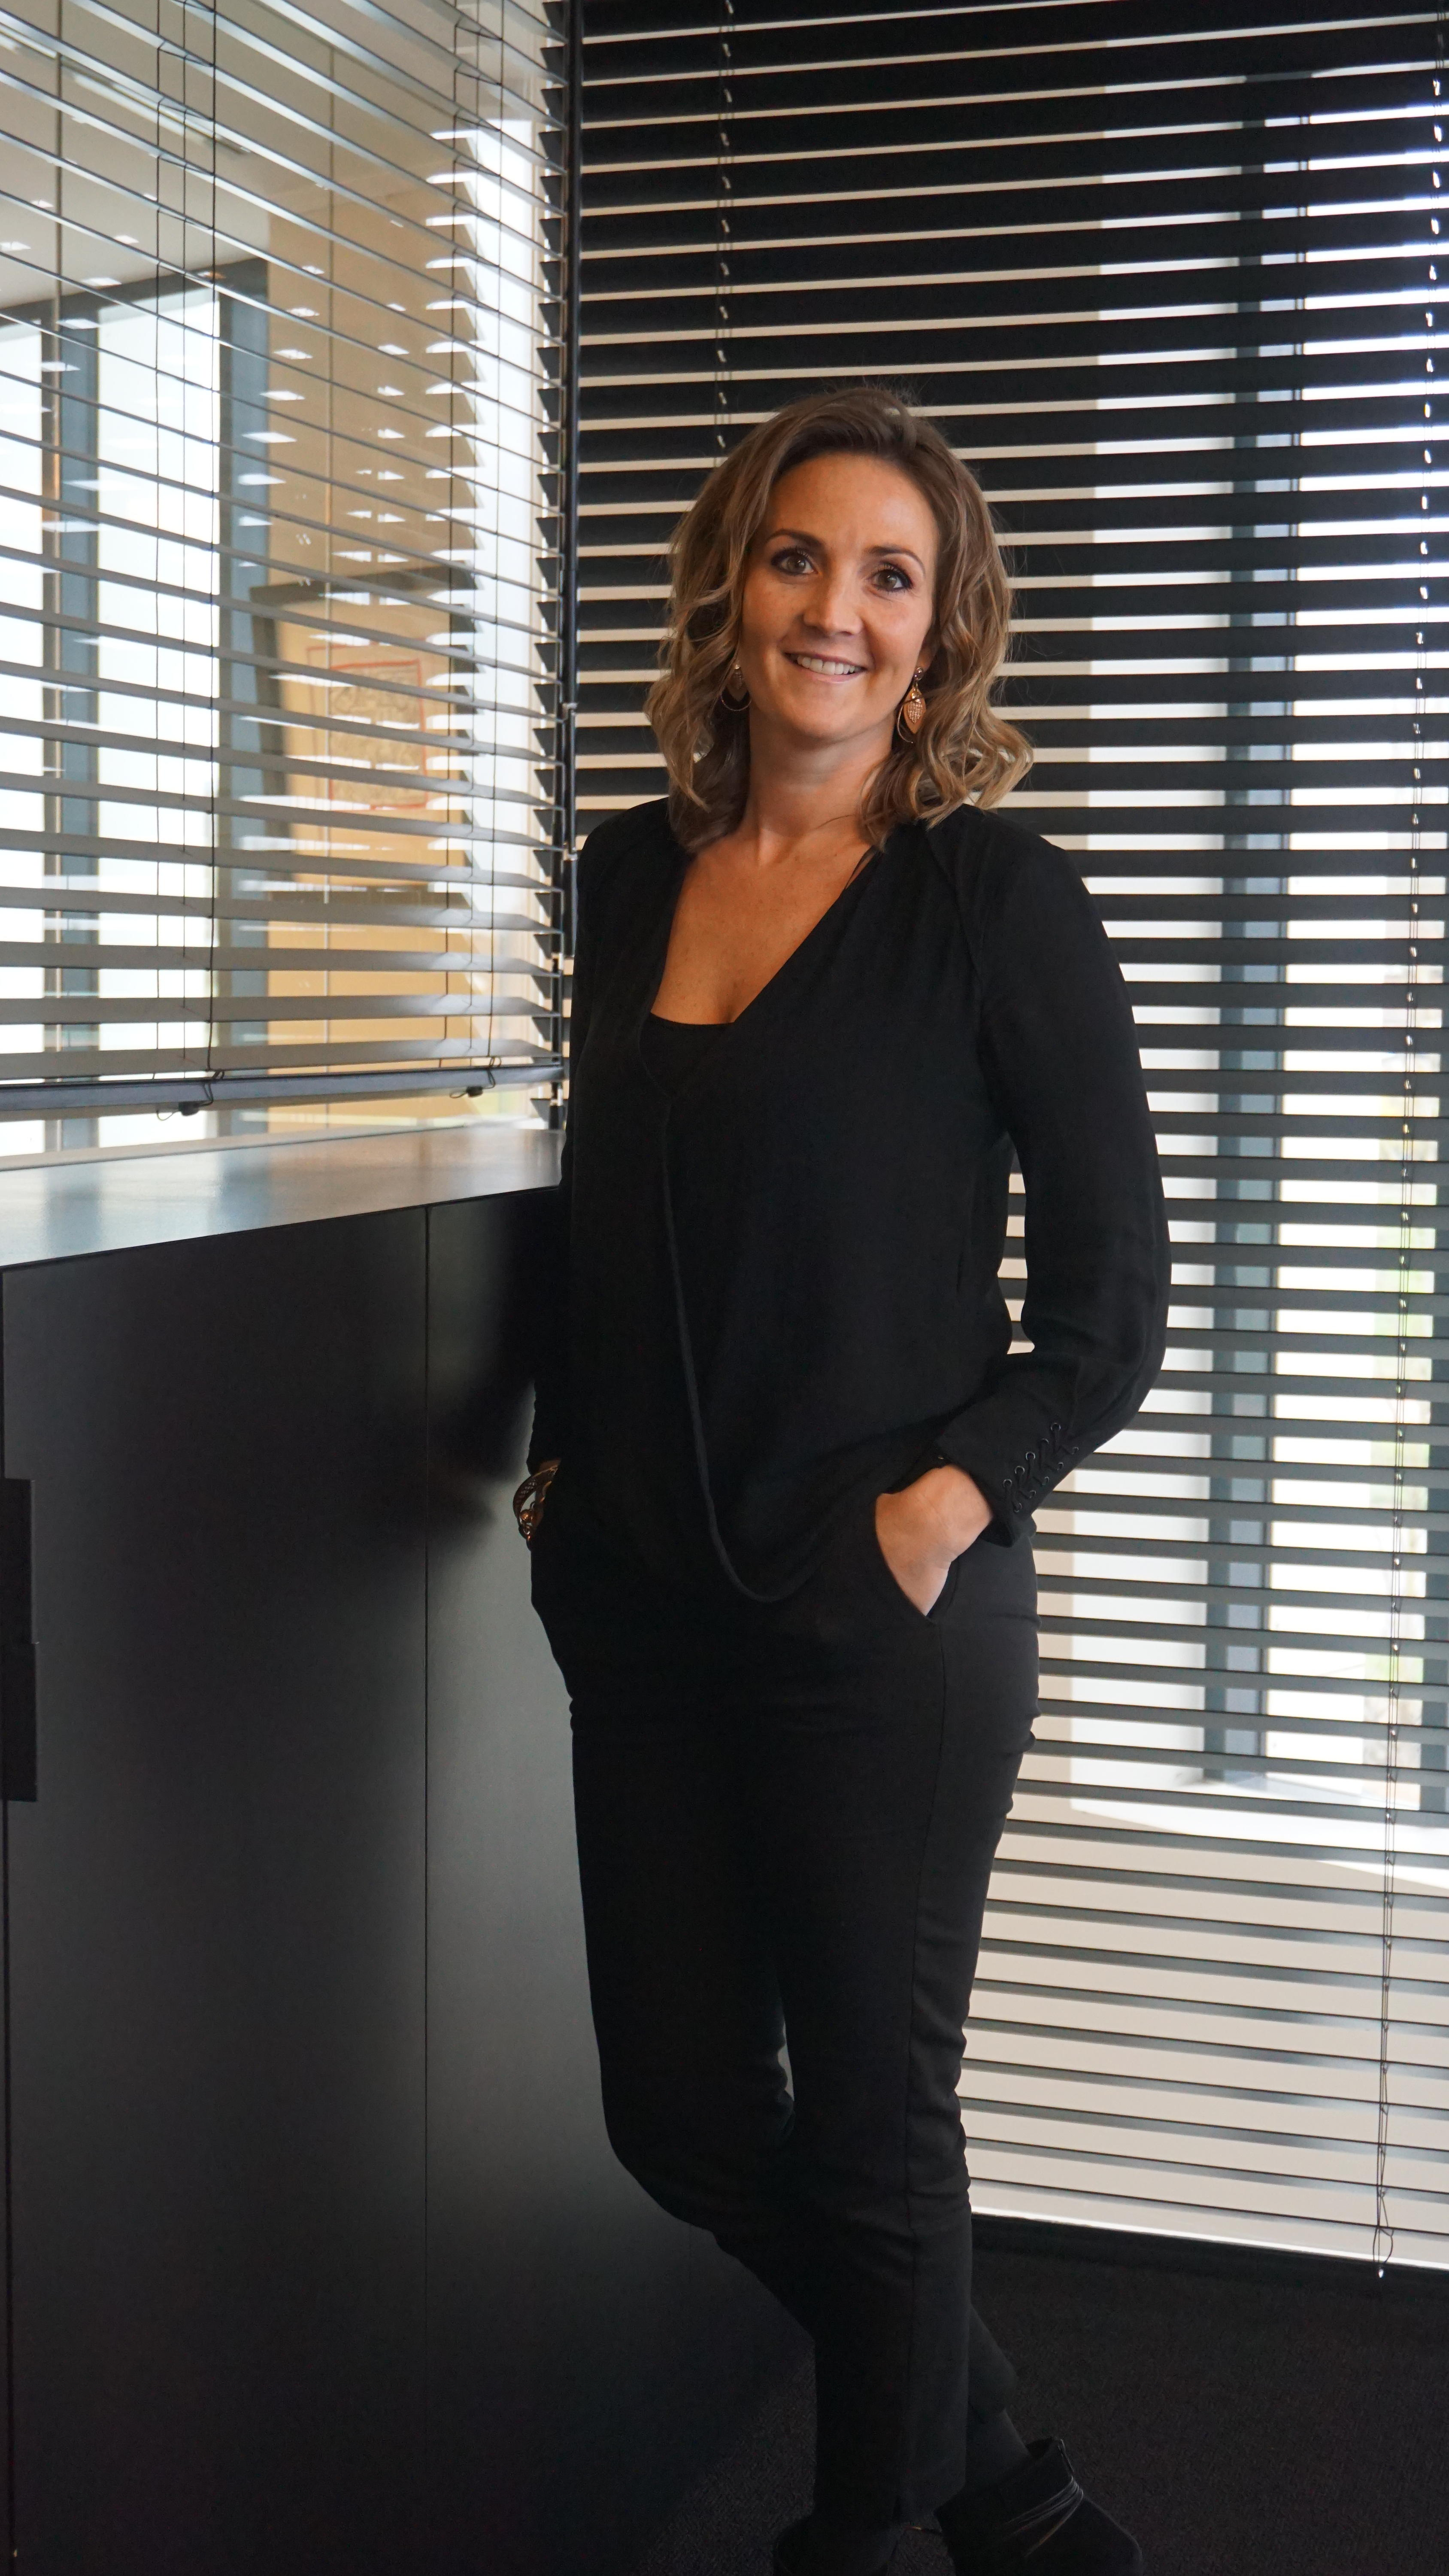 Tricia Van Damme - Sales & Marketing Manager - BVI.BE